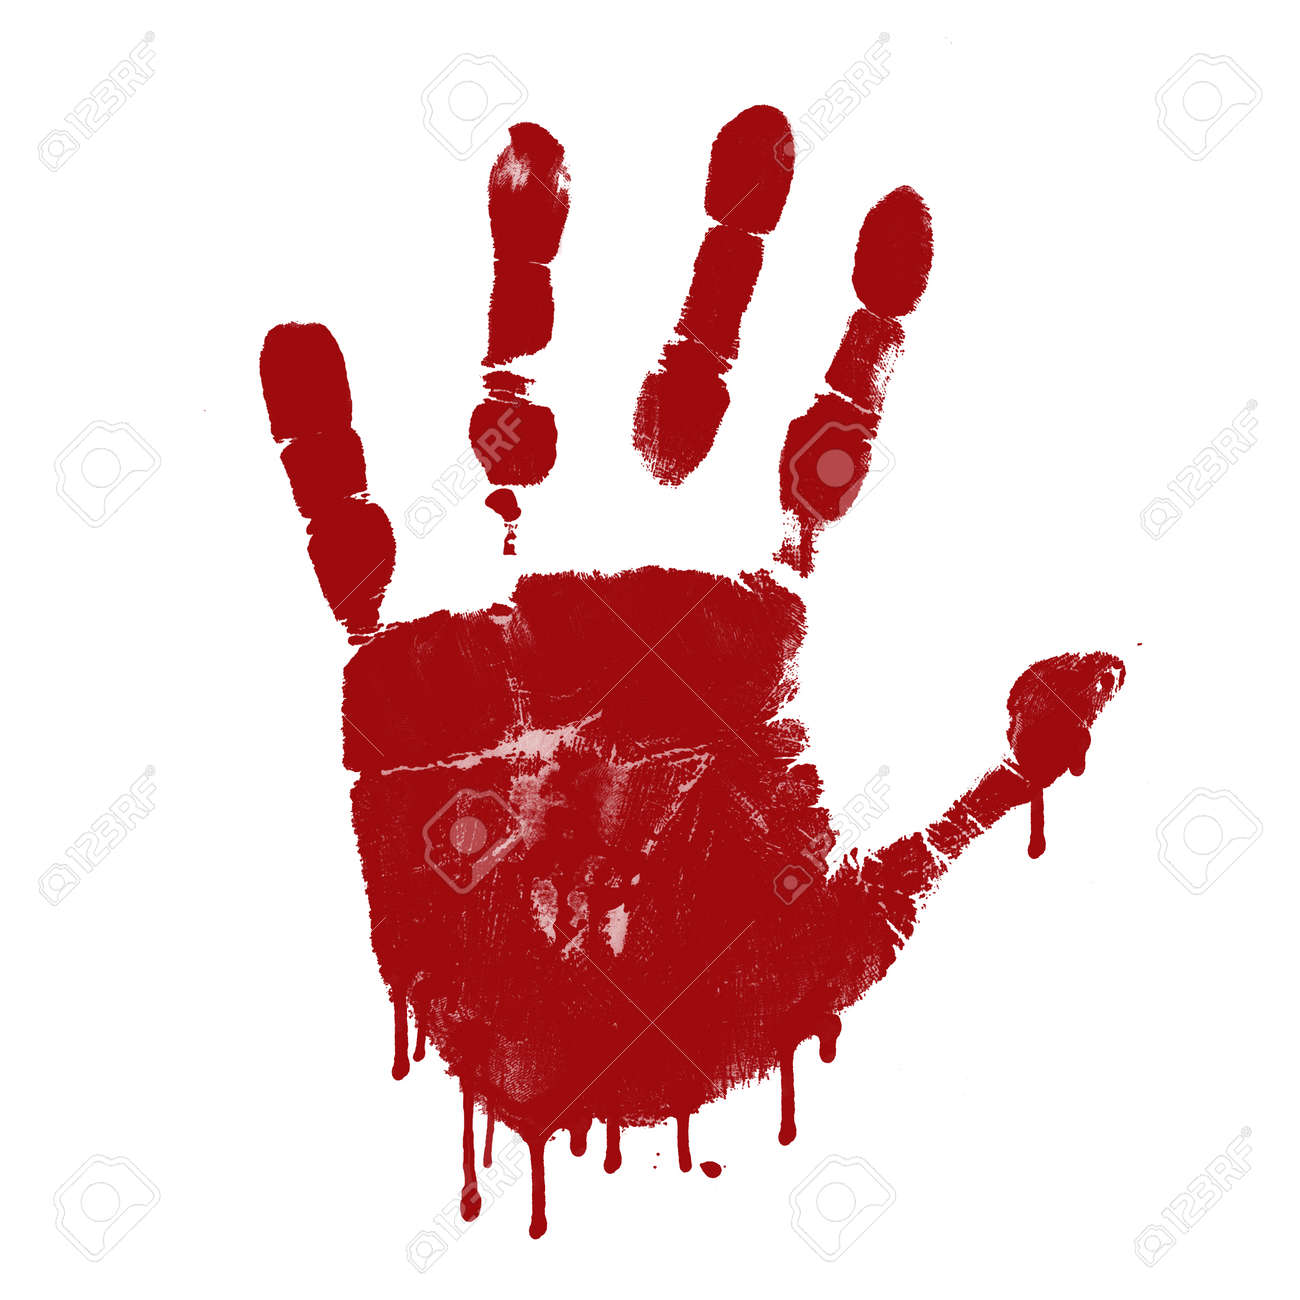 http://previews.123rf.com/images/roxanabalint/roxanabalint1312/roxanabalint131200112/24352873-Bloody-hand-print-on-white-background-vector-illustration-Stock-Vector.jpg